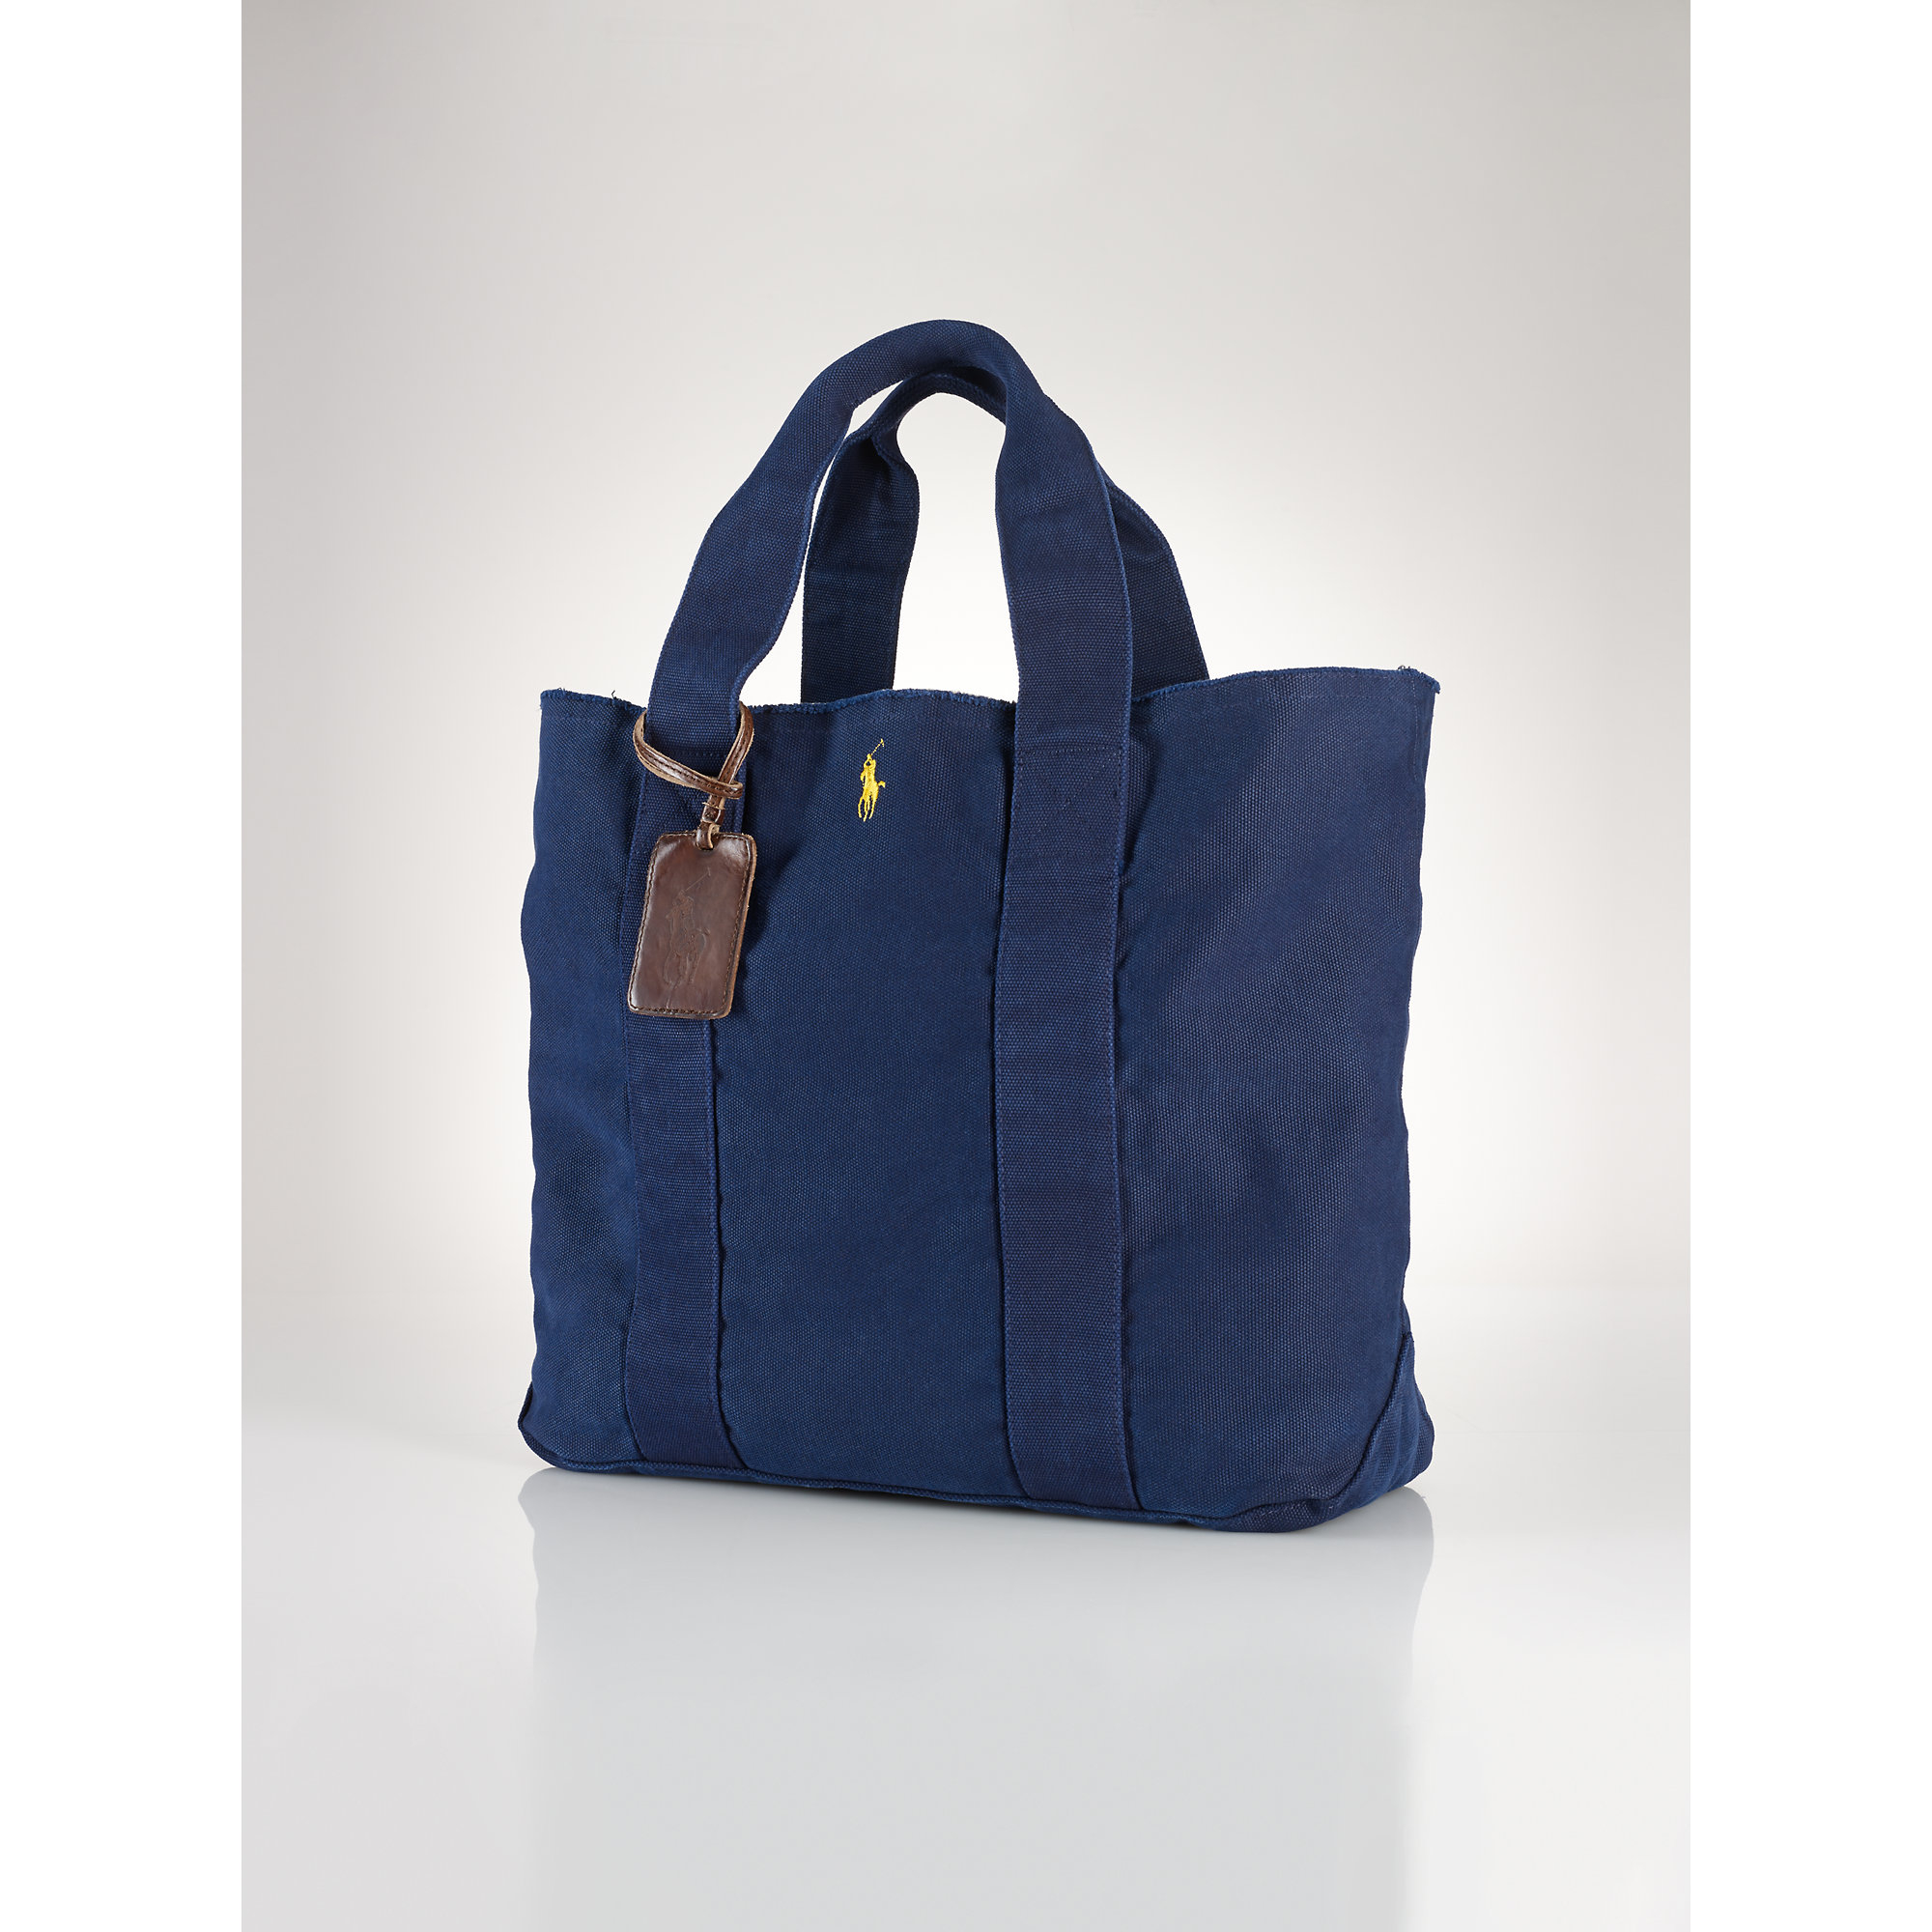 ae2b711dcec8 Lyst - Polo Ralph Lauren Pony Canvas Tote in Blue